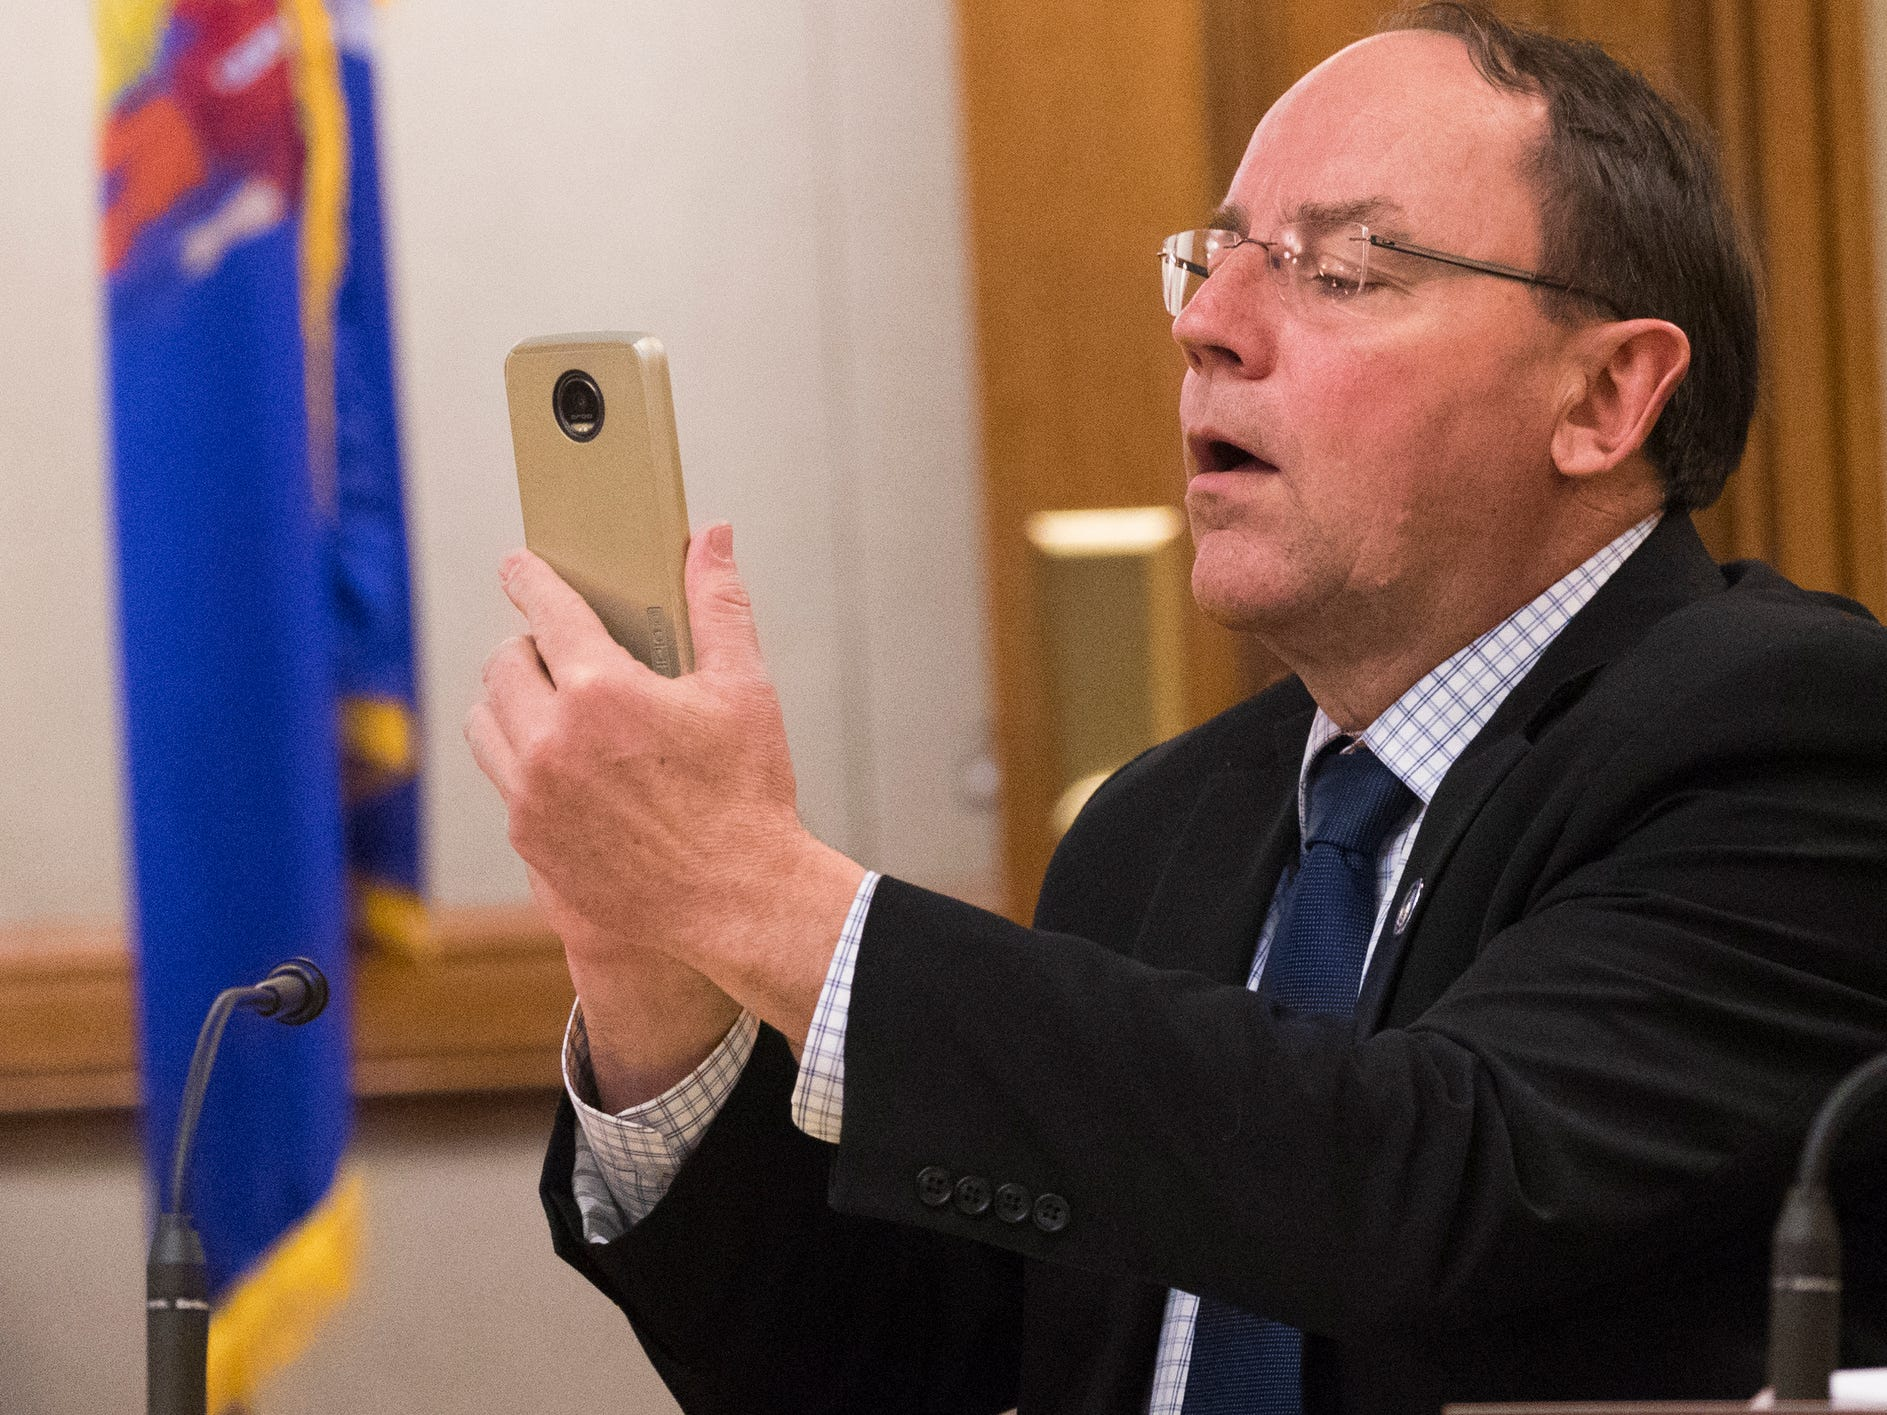 State Sen. John Tiffany (R-Hazelhurst) takes a photo of a protester during the Joint Finance Committee hearing Monday.